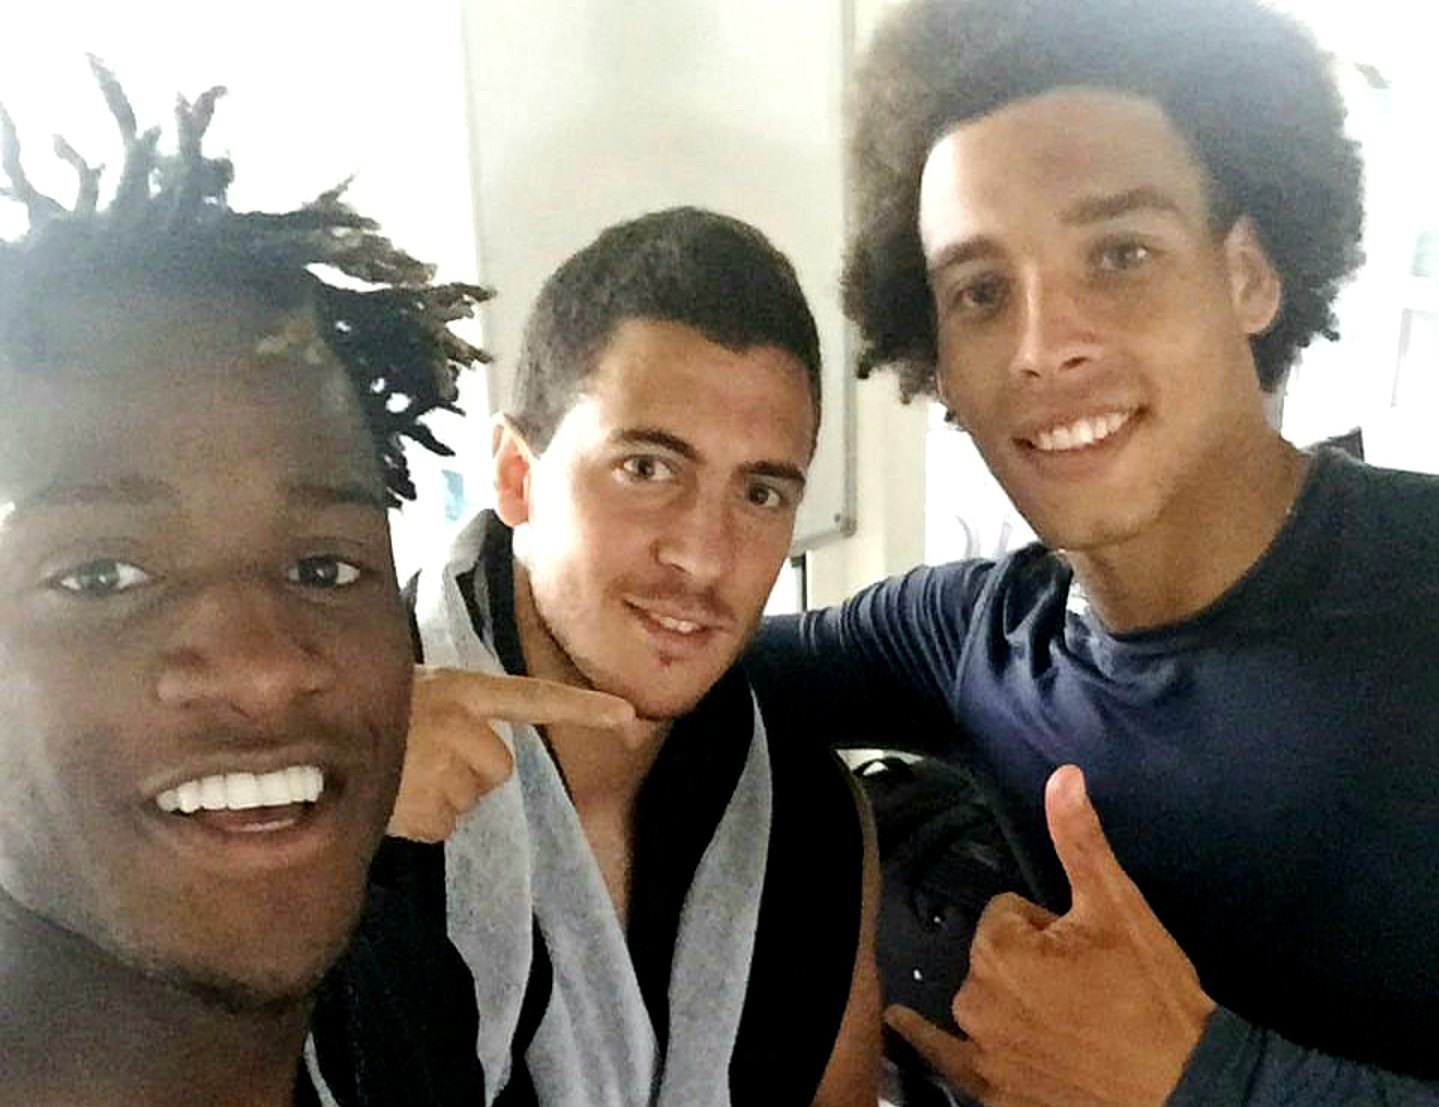 Here's a selfie of Belgian players taken after training.